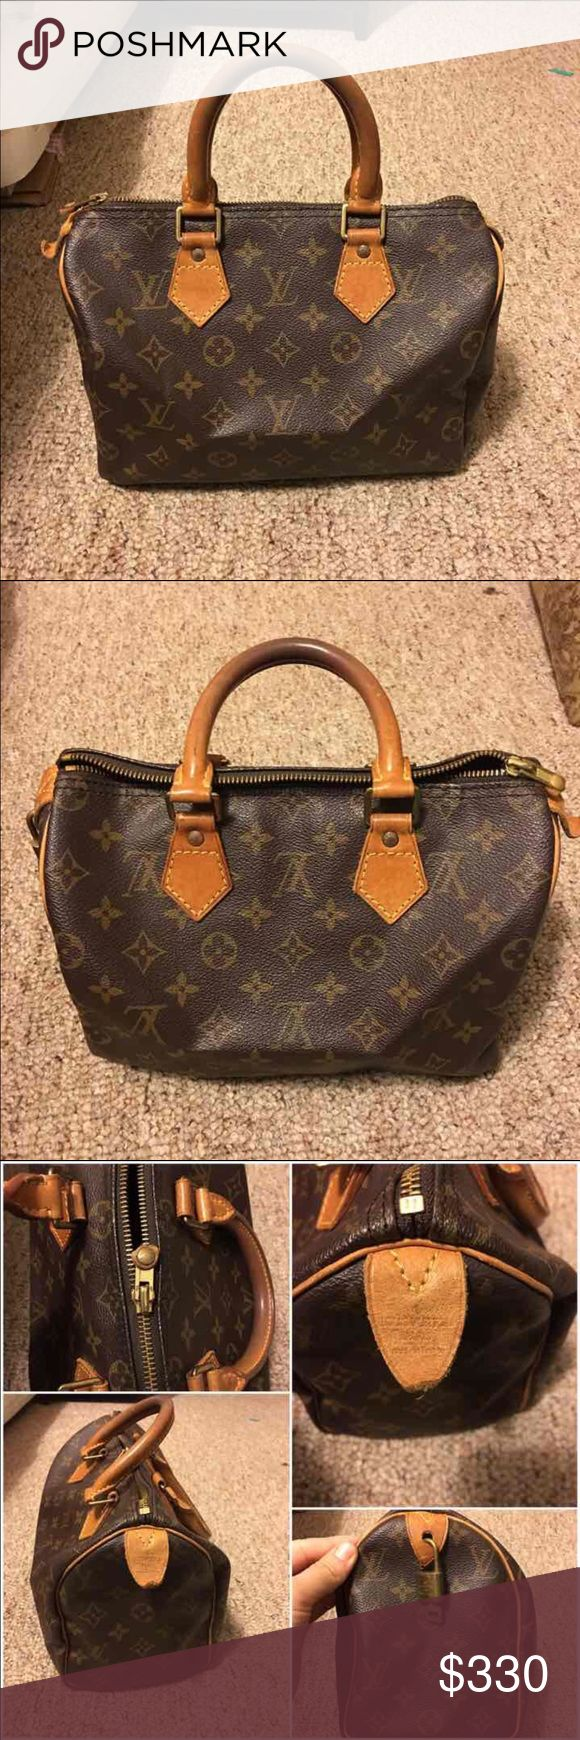 Authentic Louis Vuitton speedy 25 A preowned Authentic LOUIS VUITTON monogram speedy 25  Serial Number : VI 0914  Made in FRANCE  OUTSIDE Monogram Leather is in great condition.  HANDLE has some scratches, darker spot,stain   INSIDE is almost clean  No bad smell just material  No box and dust bag. It comes with padlock key  Please see all pictures if you have any question please let me know %100 authentic and fast shipping! Bags Satchels